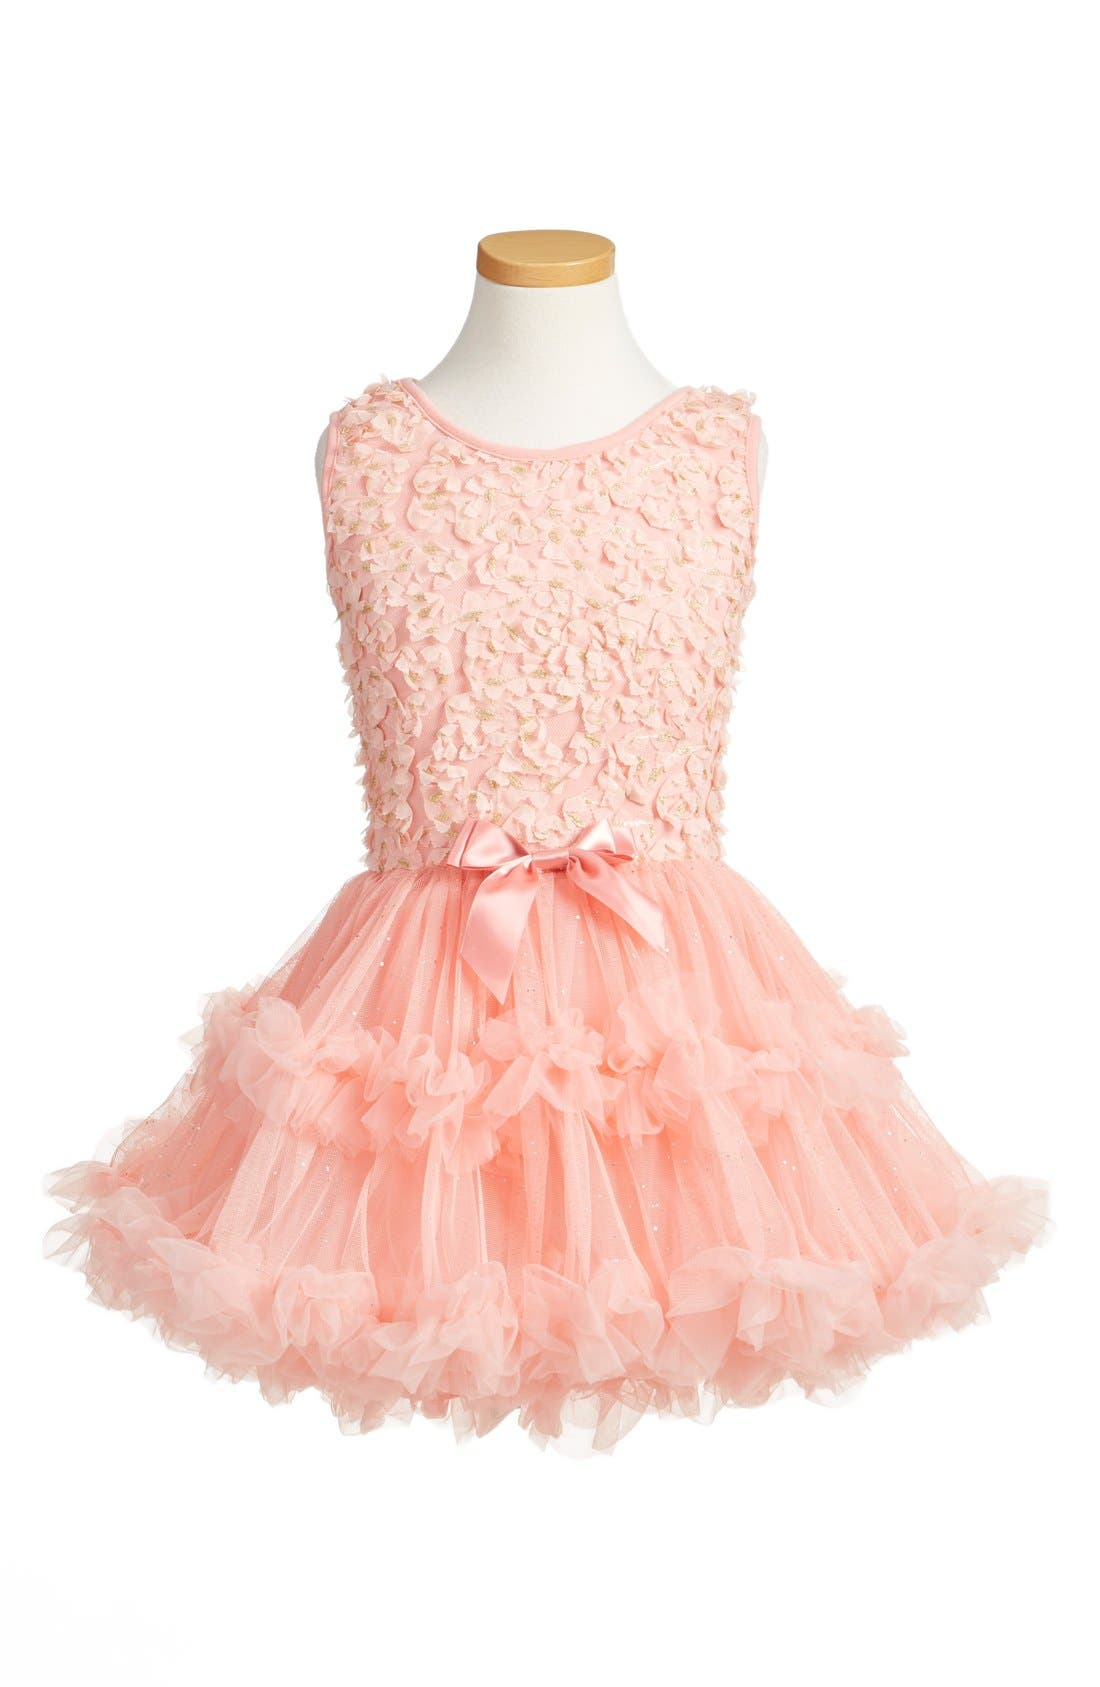 Main Image - Popatu Floral Appliqué Tutu Dress (Toddler Girls & Little Girls)